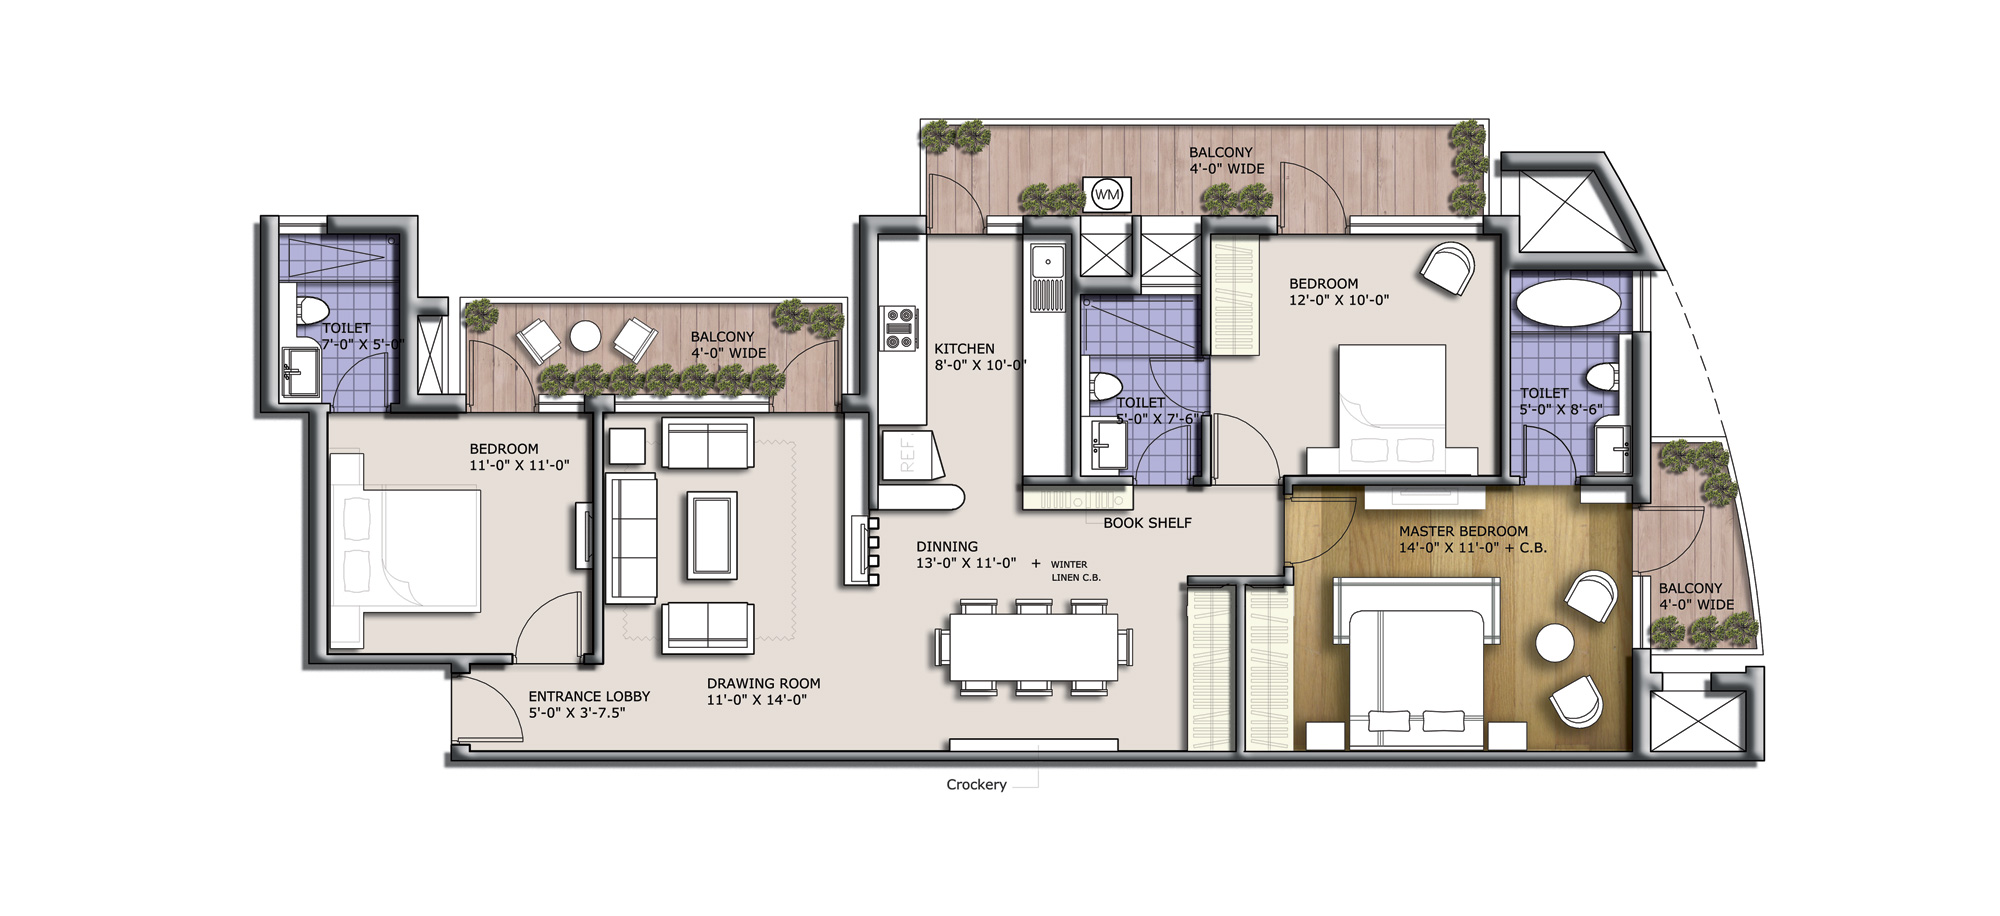 discovery park 1625 sq feet floor plan